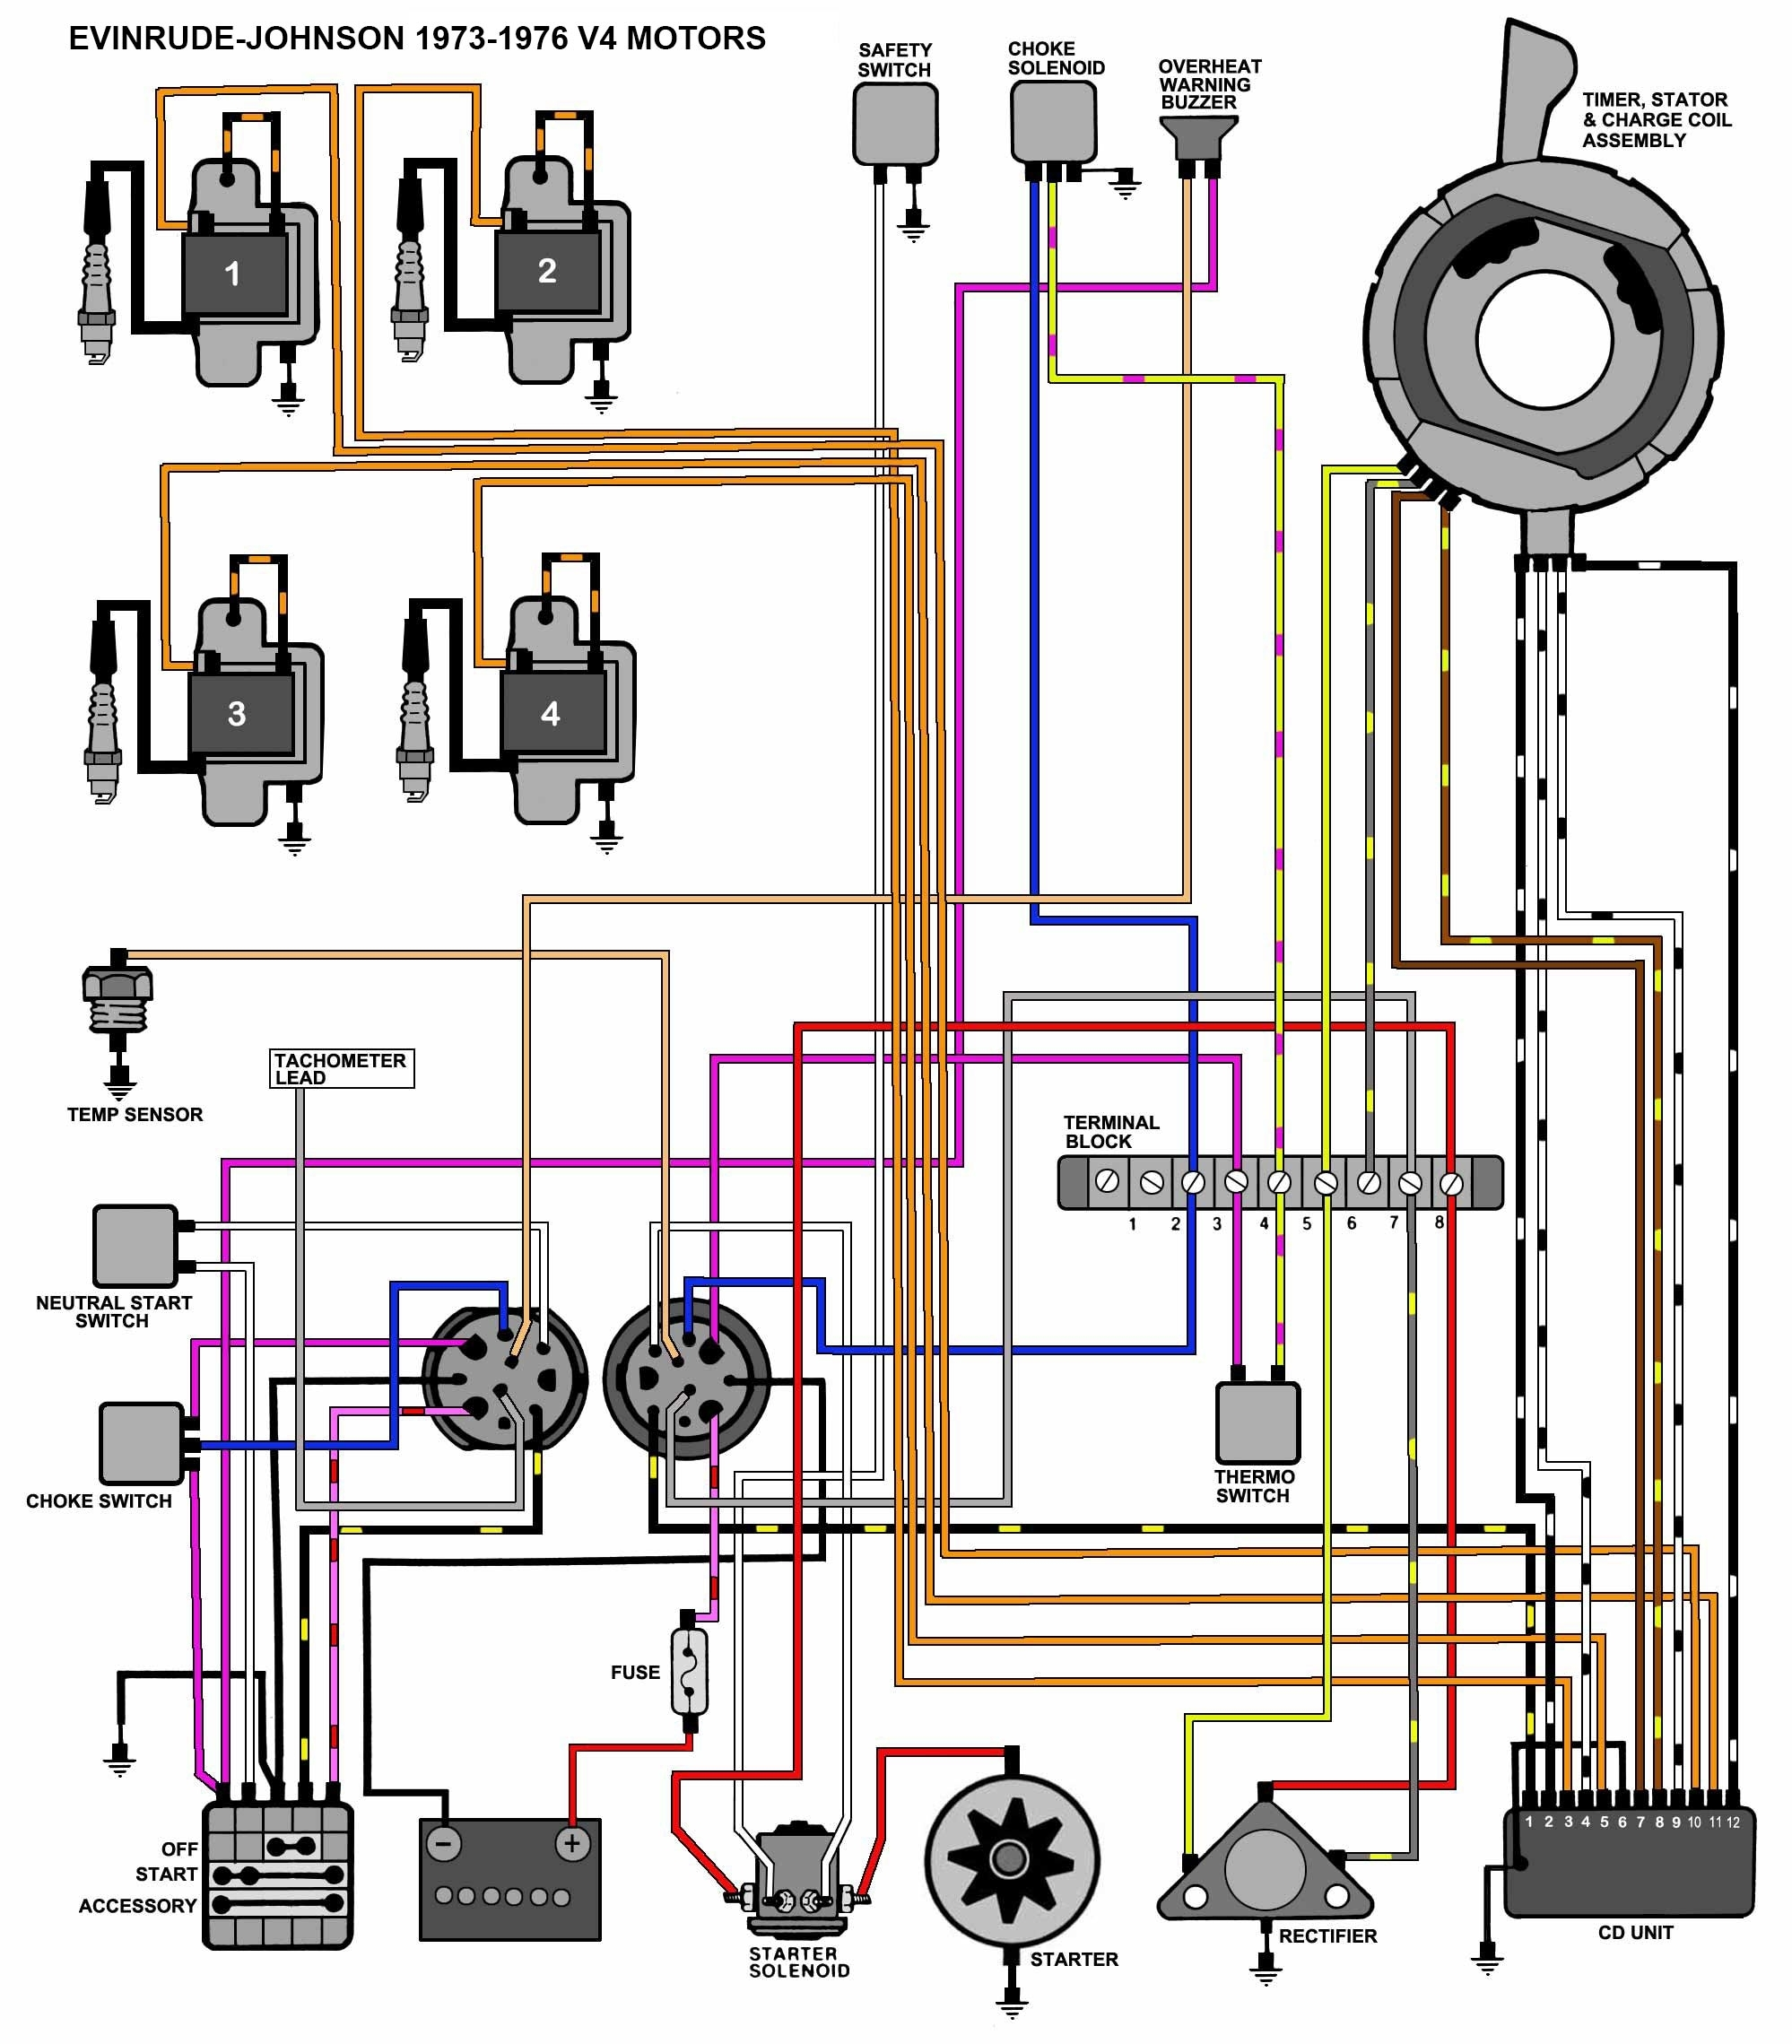 evinrude ignition switch wiring diagram with 1969 omc 55 wiring throughout 70 hp evinrude wiring diagram?resize\\\=665%2C759\\\&ssl\\\=1 moomba wiring diagram cobalt wiring diagram \u2022 wiring diagram  at gsmx.co